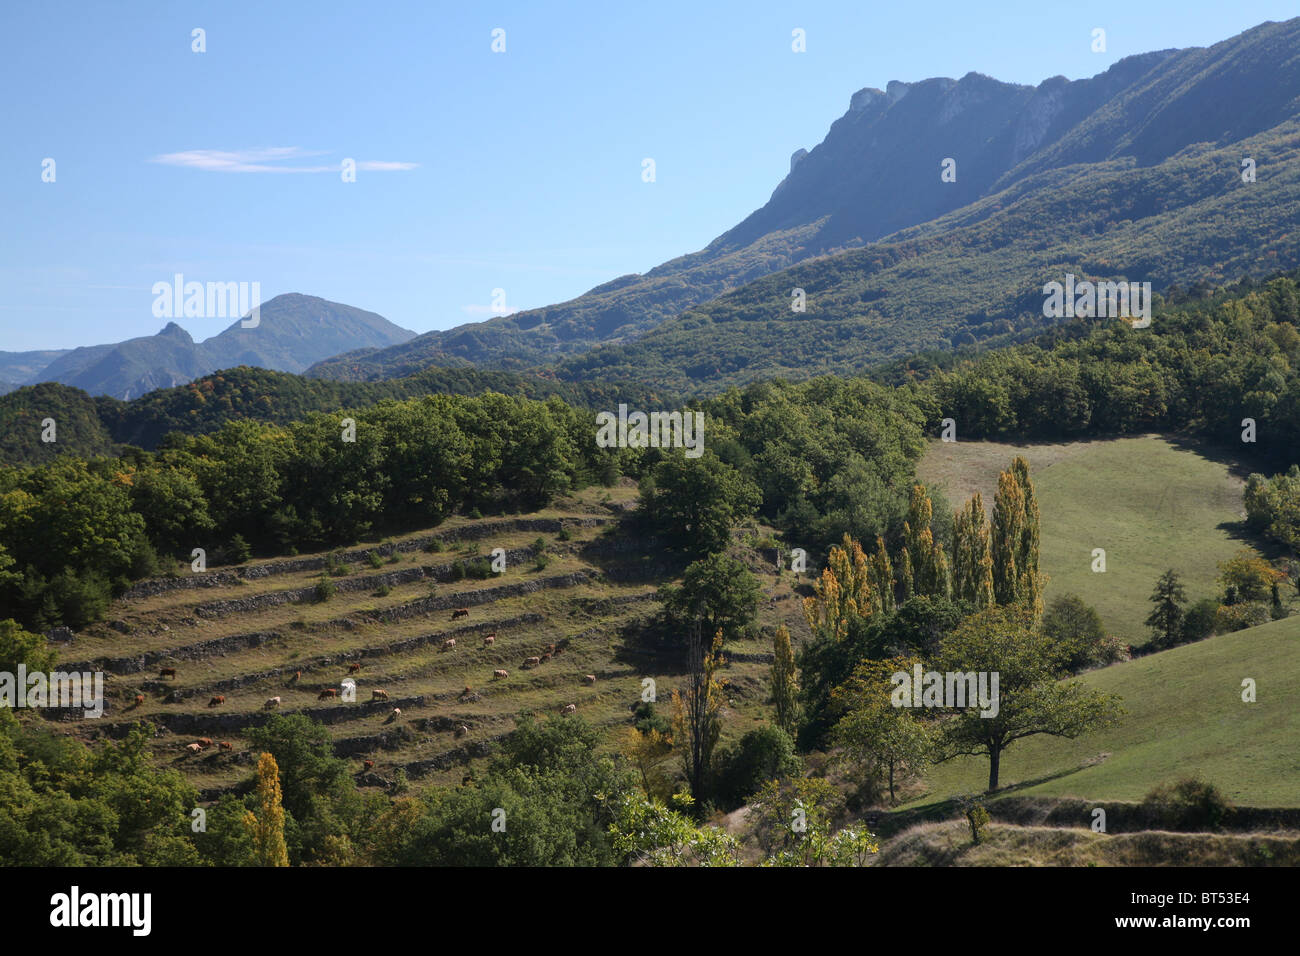 Drôme Valley view, Les Trois Becs (with cows in a terraced field) - Stock Image